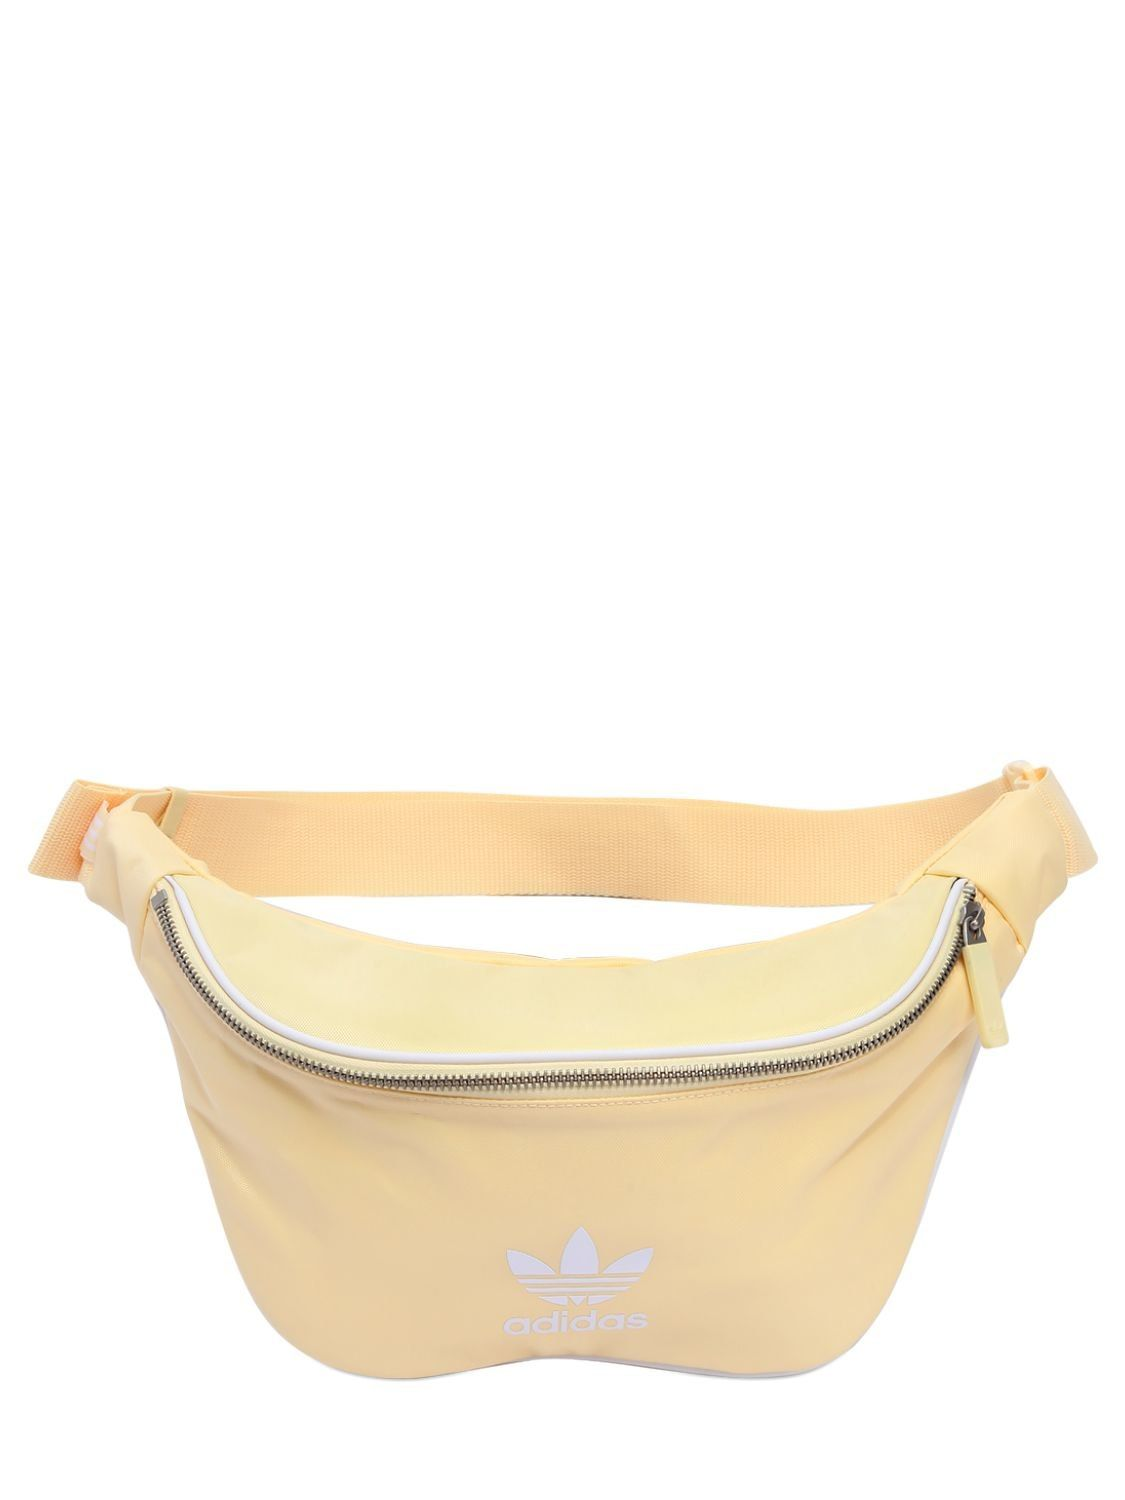 ADIDAS ORIGINALS ADICOLOR NYLON BELT PACK.  adidasoriginals  bags  belt bags   nylon   c6211b250220e